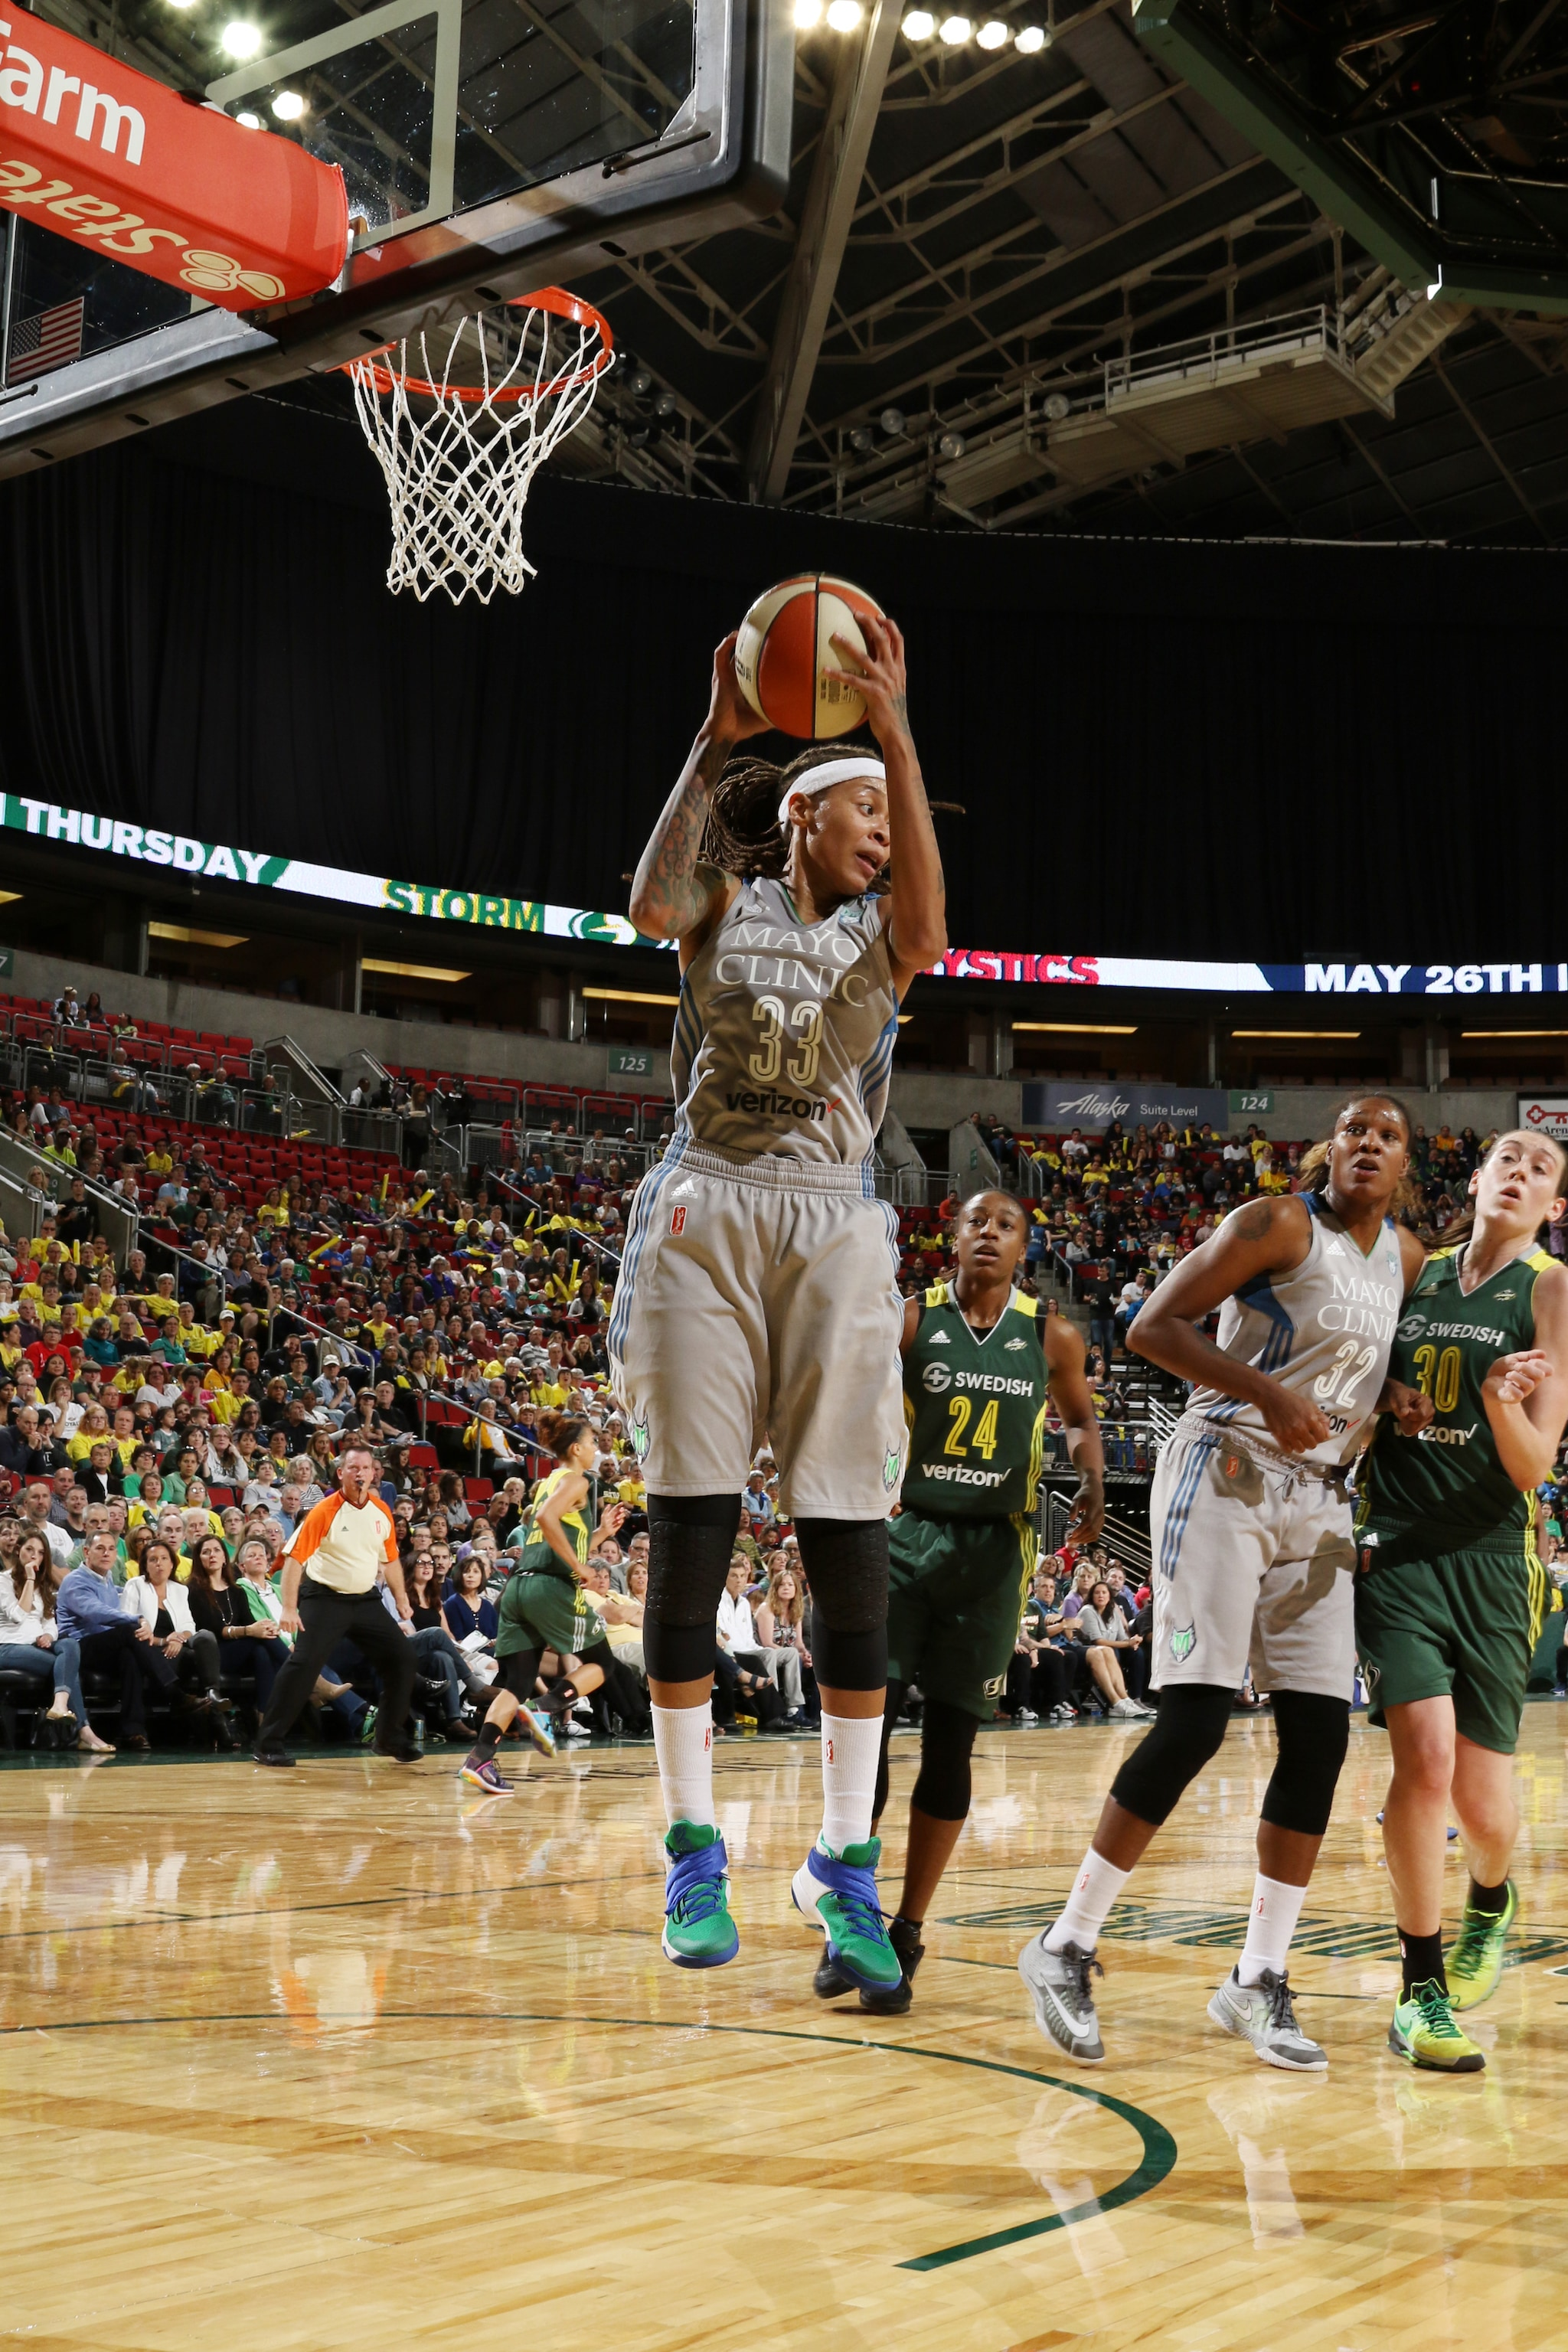 SEATTLE, WA - MAY 22:  Seimone Augustus #33 of the Minnesota Lynx grabs the rebound against the Seattle Storm on May 22, 2016 at KeyArena in Seattle, Washington. NOTE TO USER: User expressly acknowledges and agrees that, by downloading and or using this photograph, user is consenting to the terms and conditions of Getty Images License Agreement. Mandatory Copyright Notice: Copyright 2016 NBAE (Photo by Josh Huston/NBAE via Getty Images)